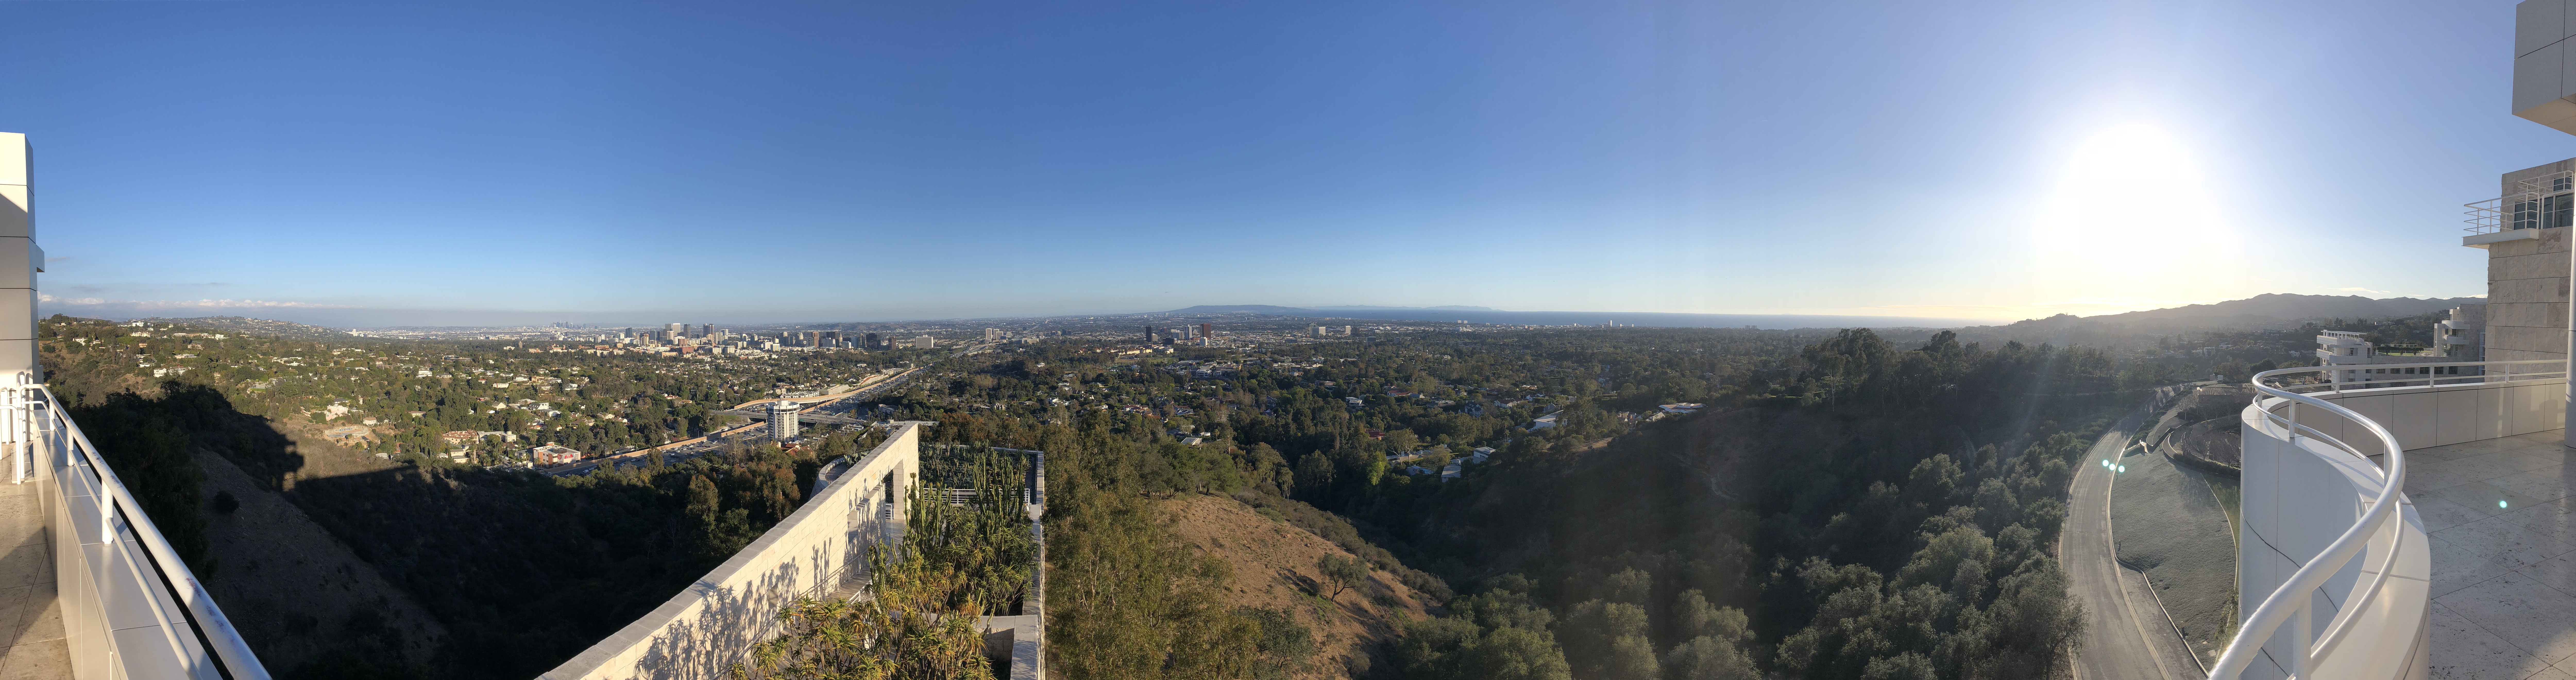 The view from the Getty Center